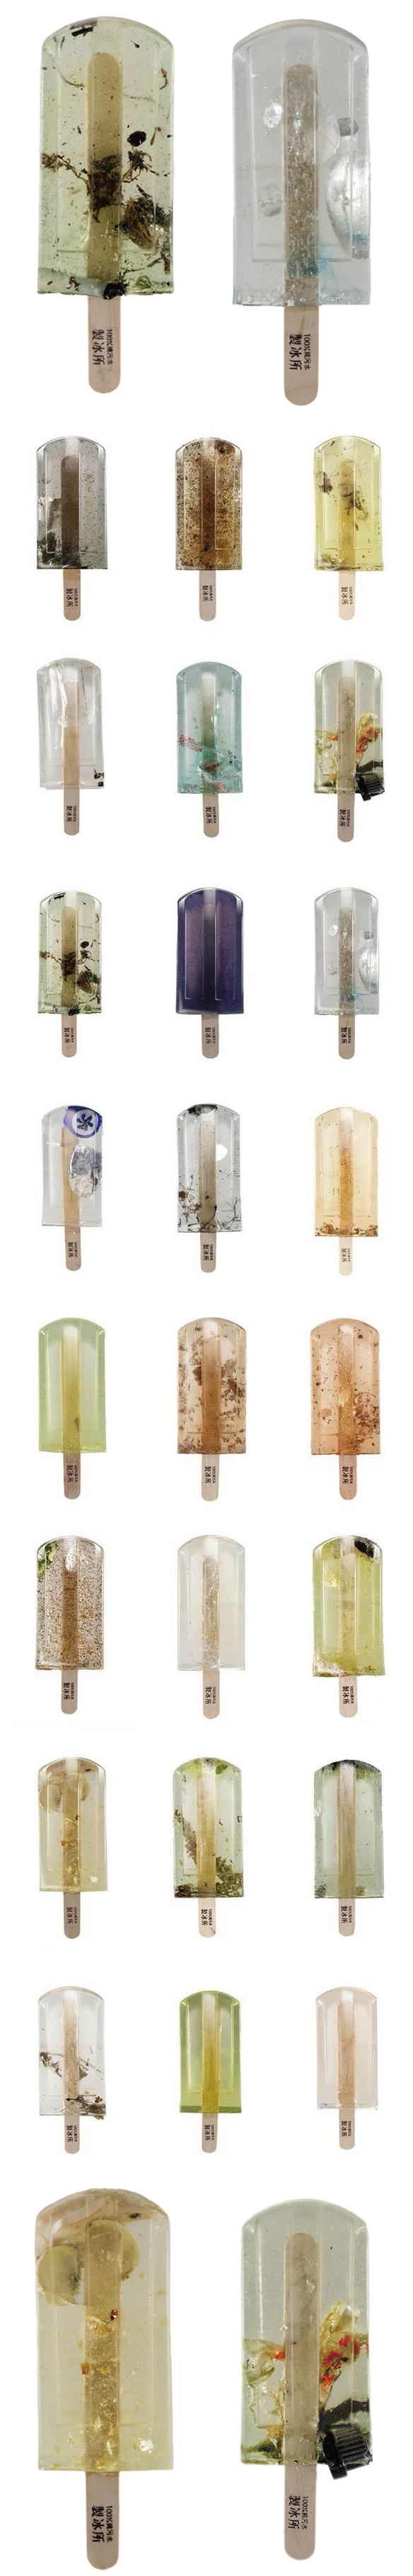 "Beautiful, until you realize what you're looking at … ""Polluted Water Popsicles"". I have to be honest, I don't really know the full story behind this project. They only have a Facebook page, with just"